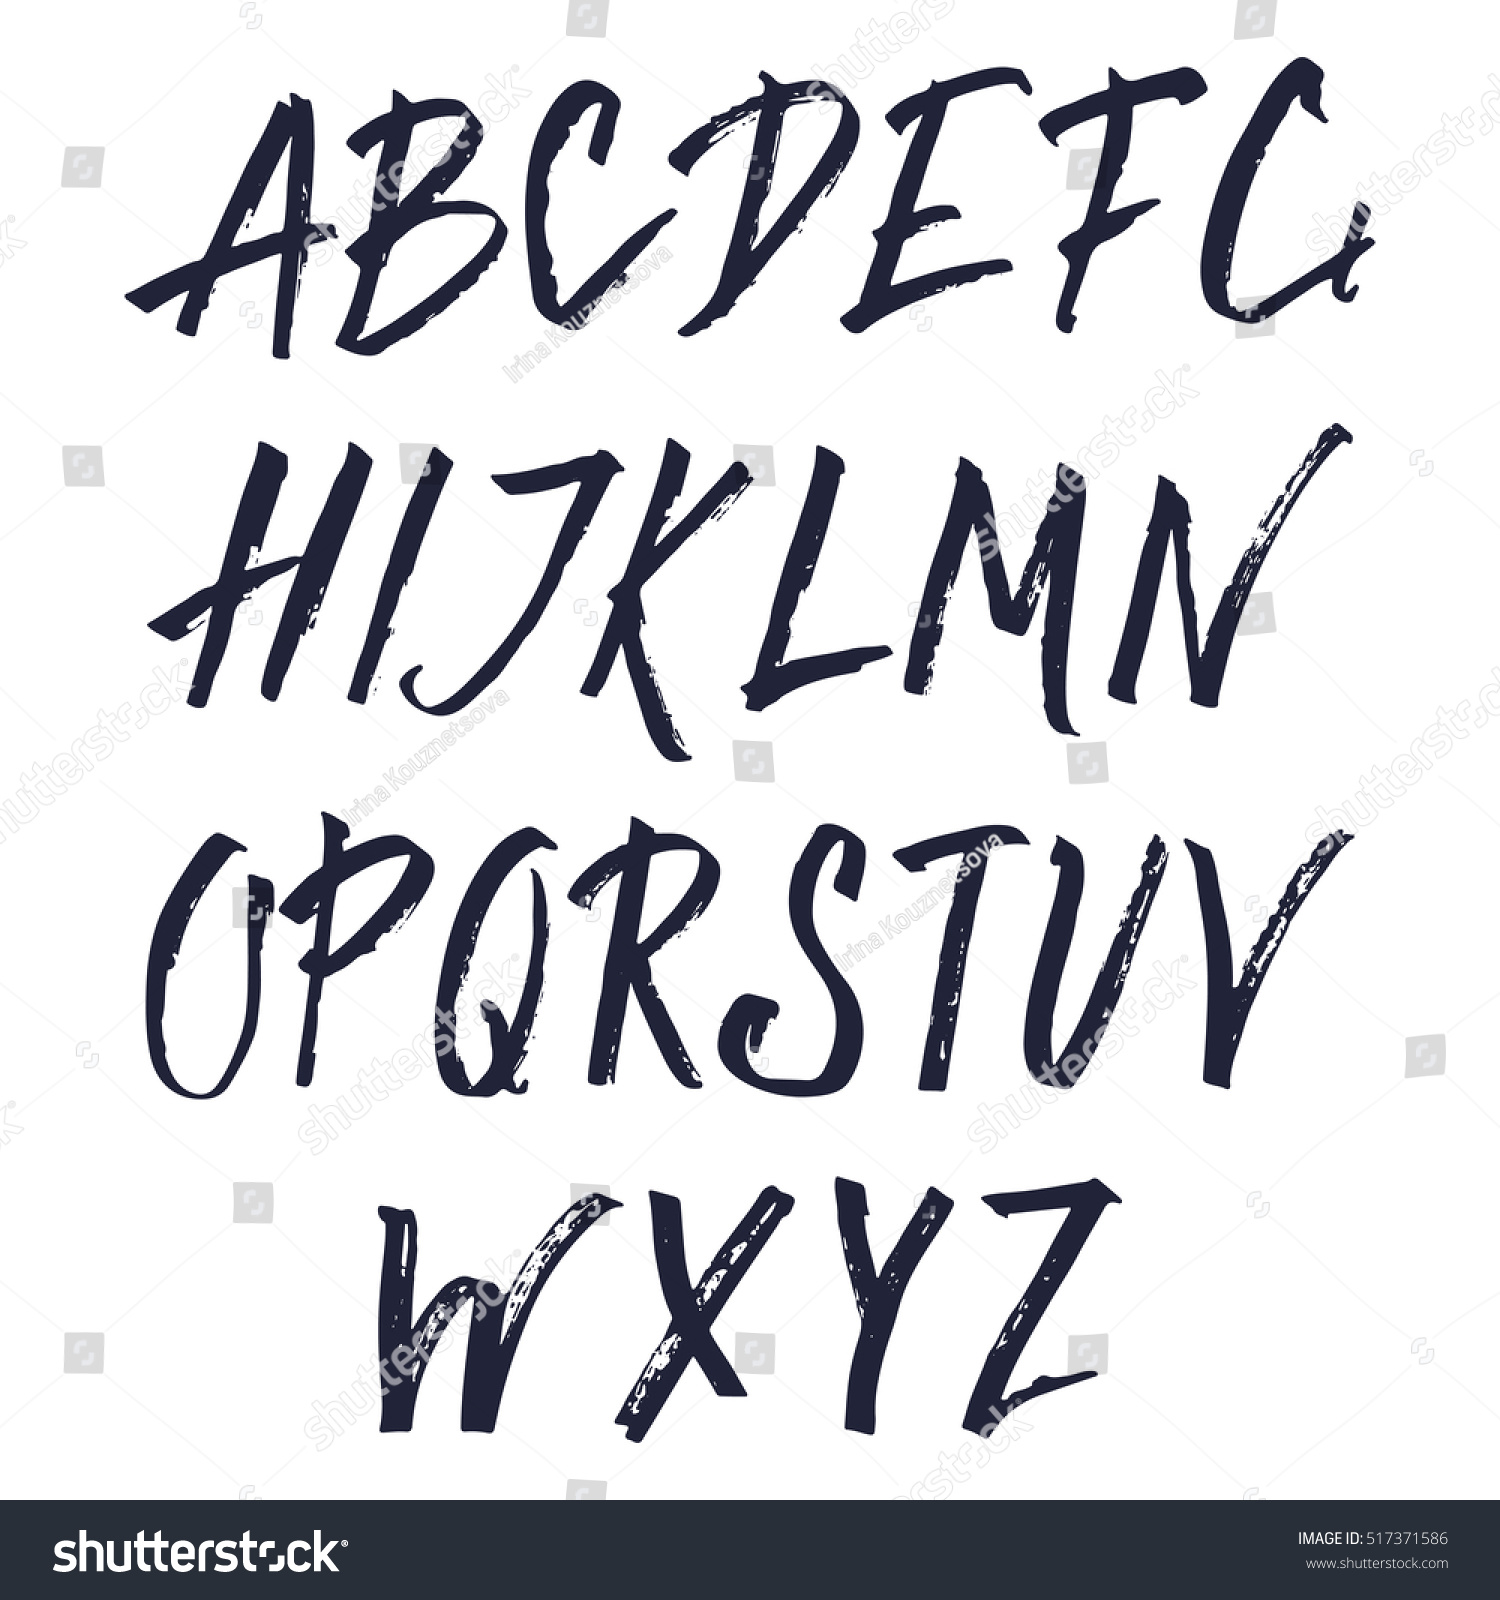 Uppercase Hand Painted Ink Alphabet Creative Letters For Your Design